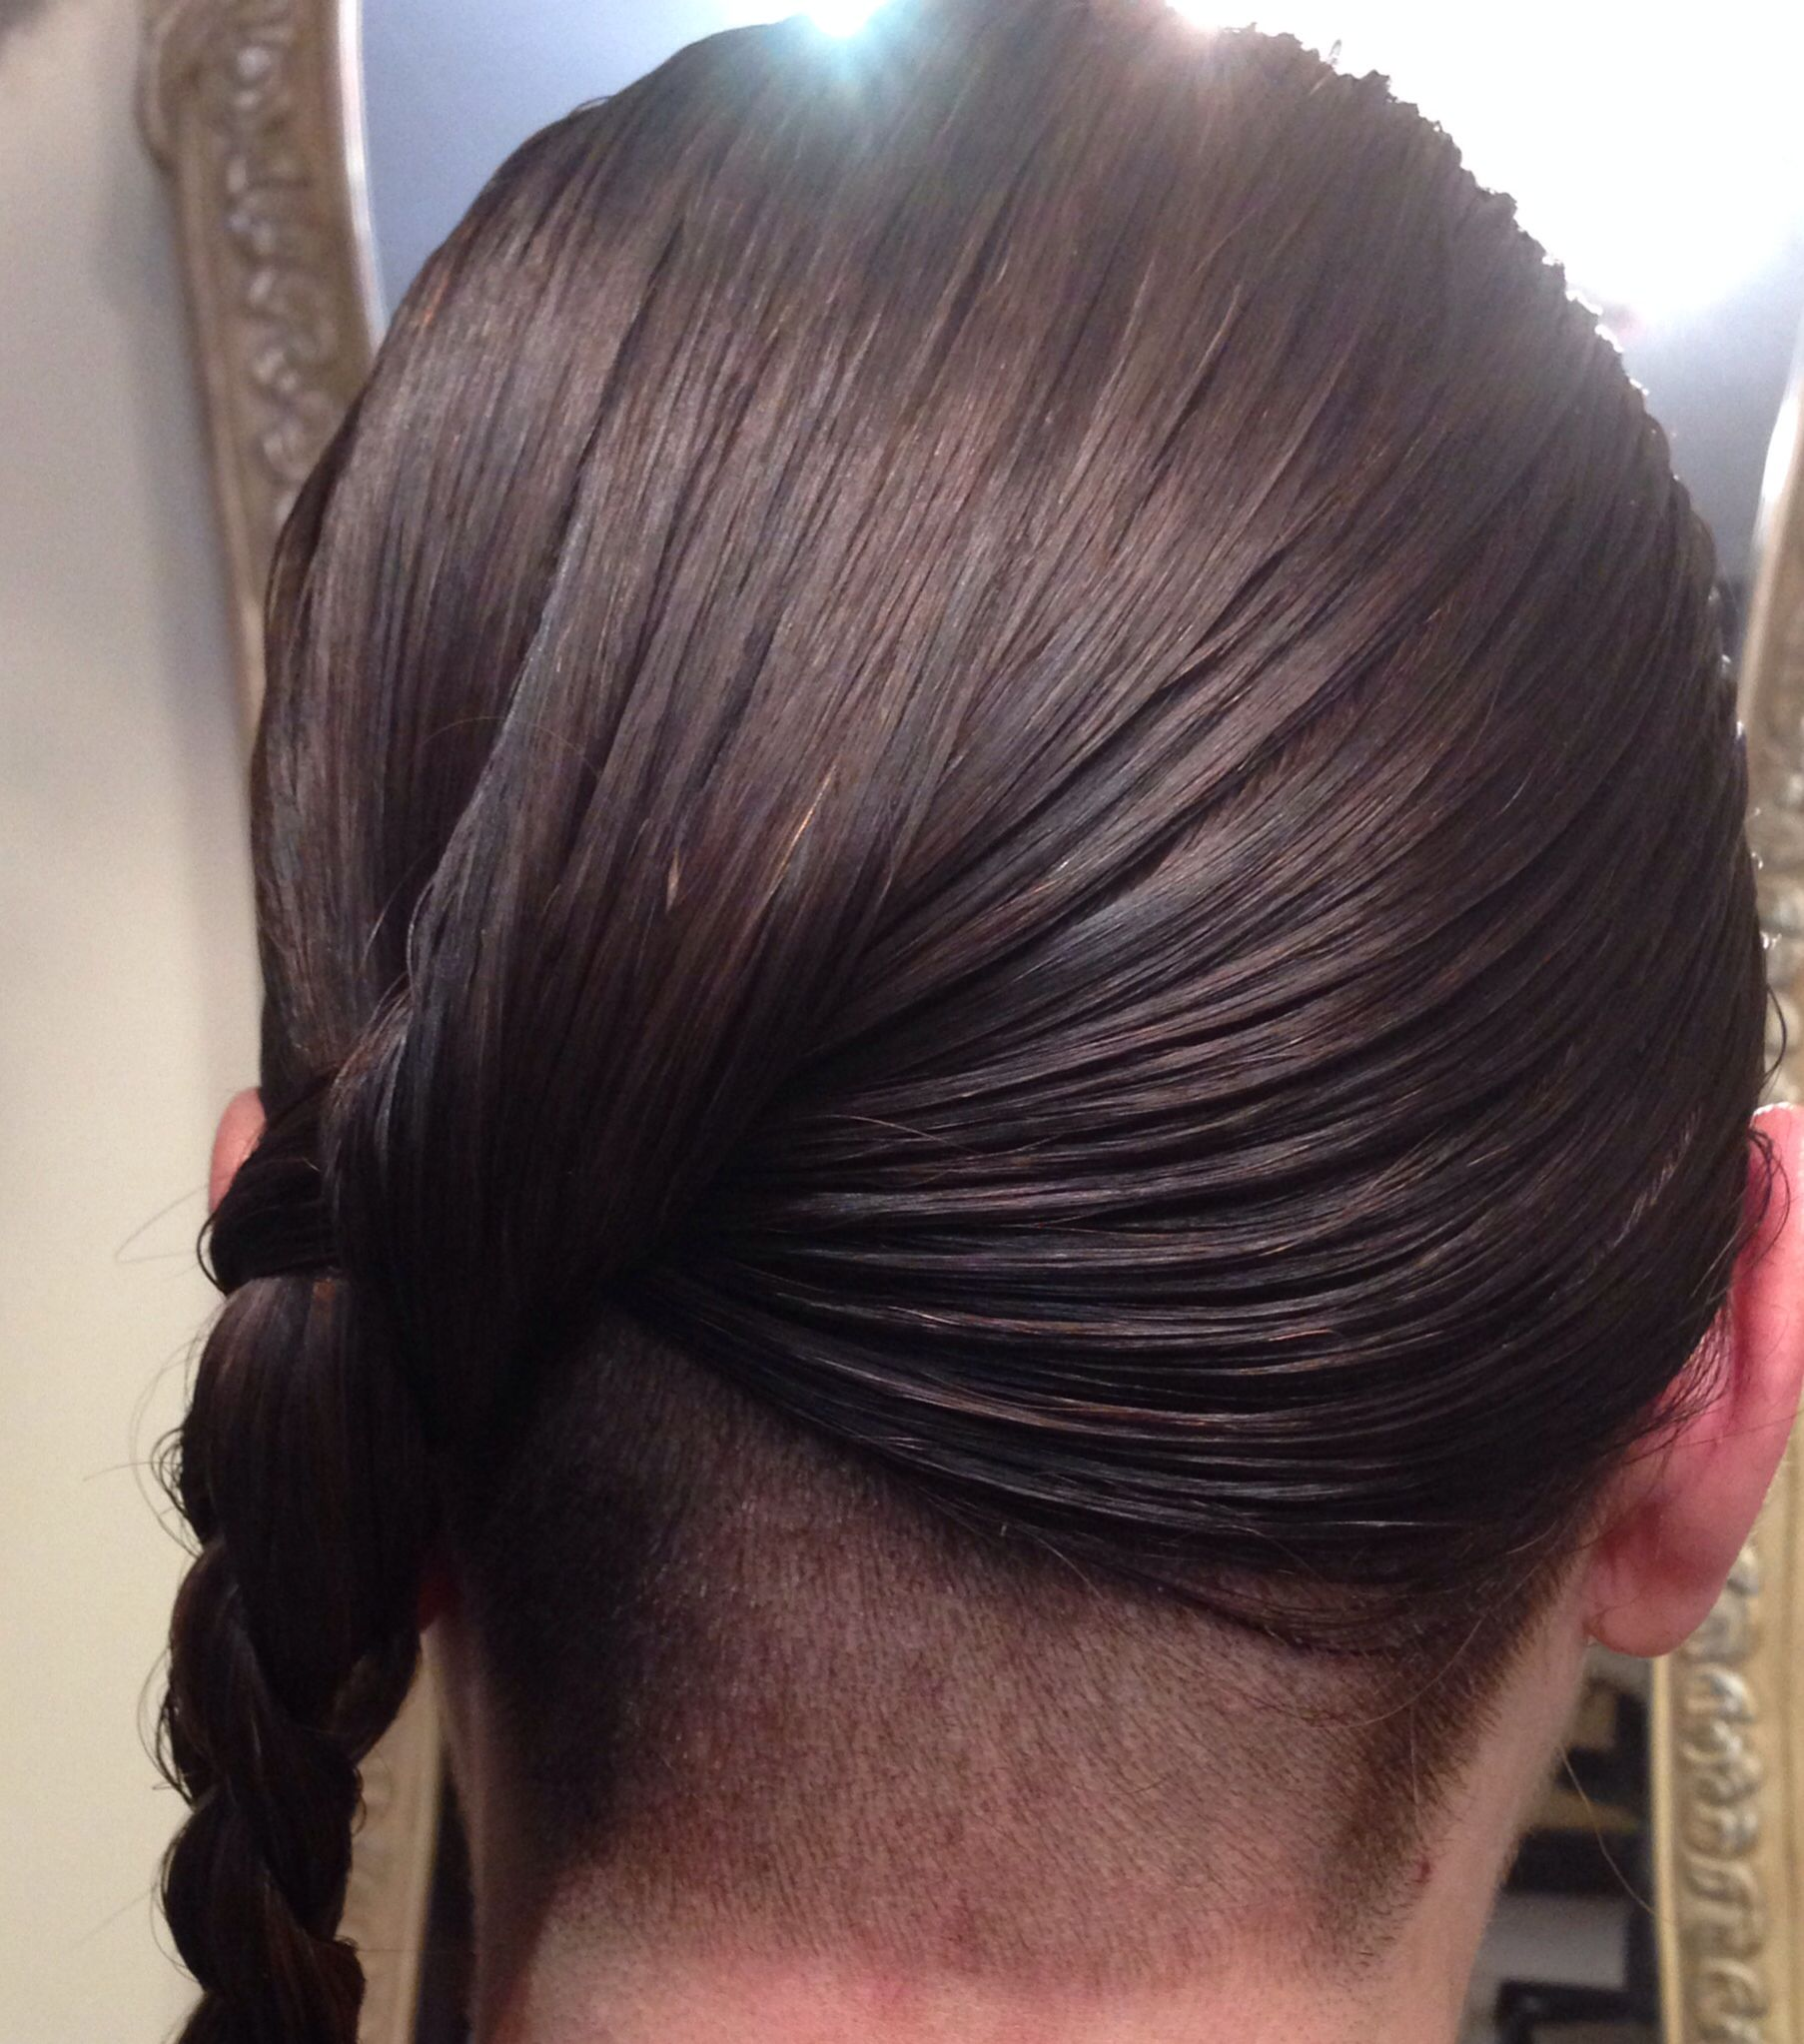 Long hair undercut Shaved underneath Braided to one side to show